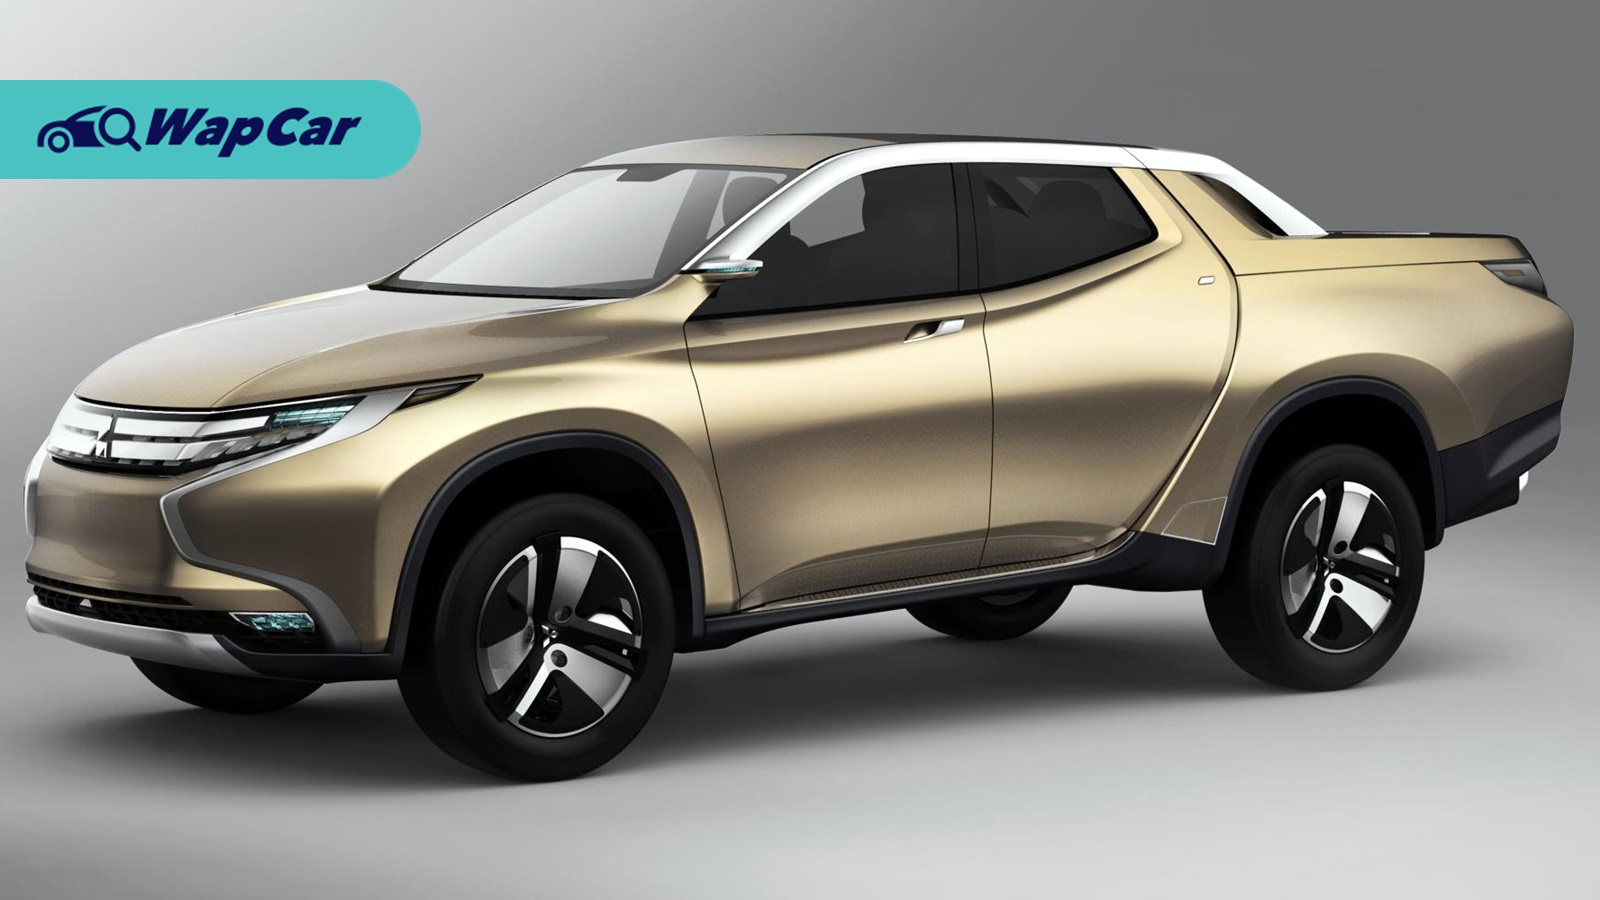 All-new Mitsubishi Triton confirmed for 4, Xpander Hybrid in